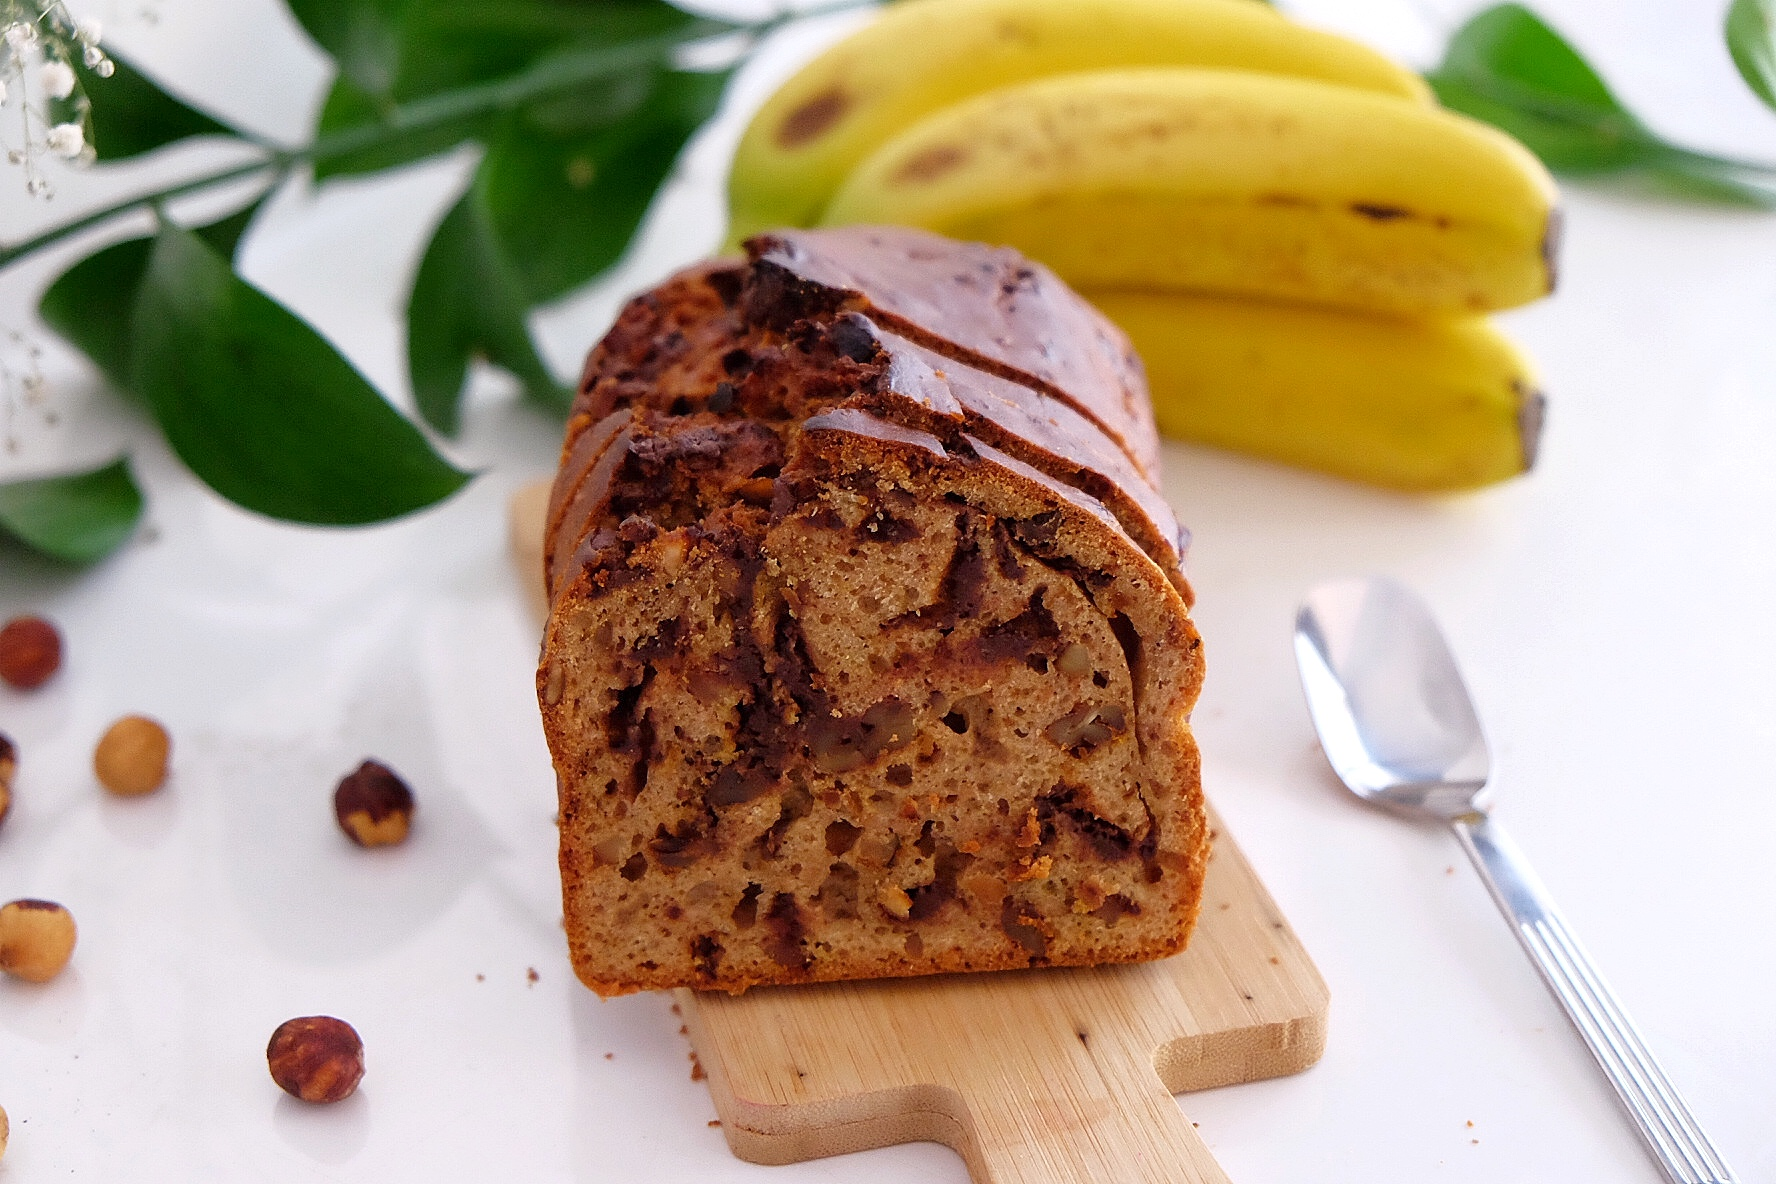 Banana bread with nuts and turmeric